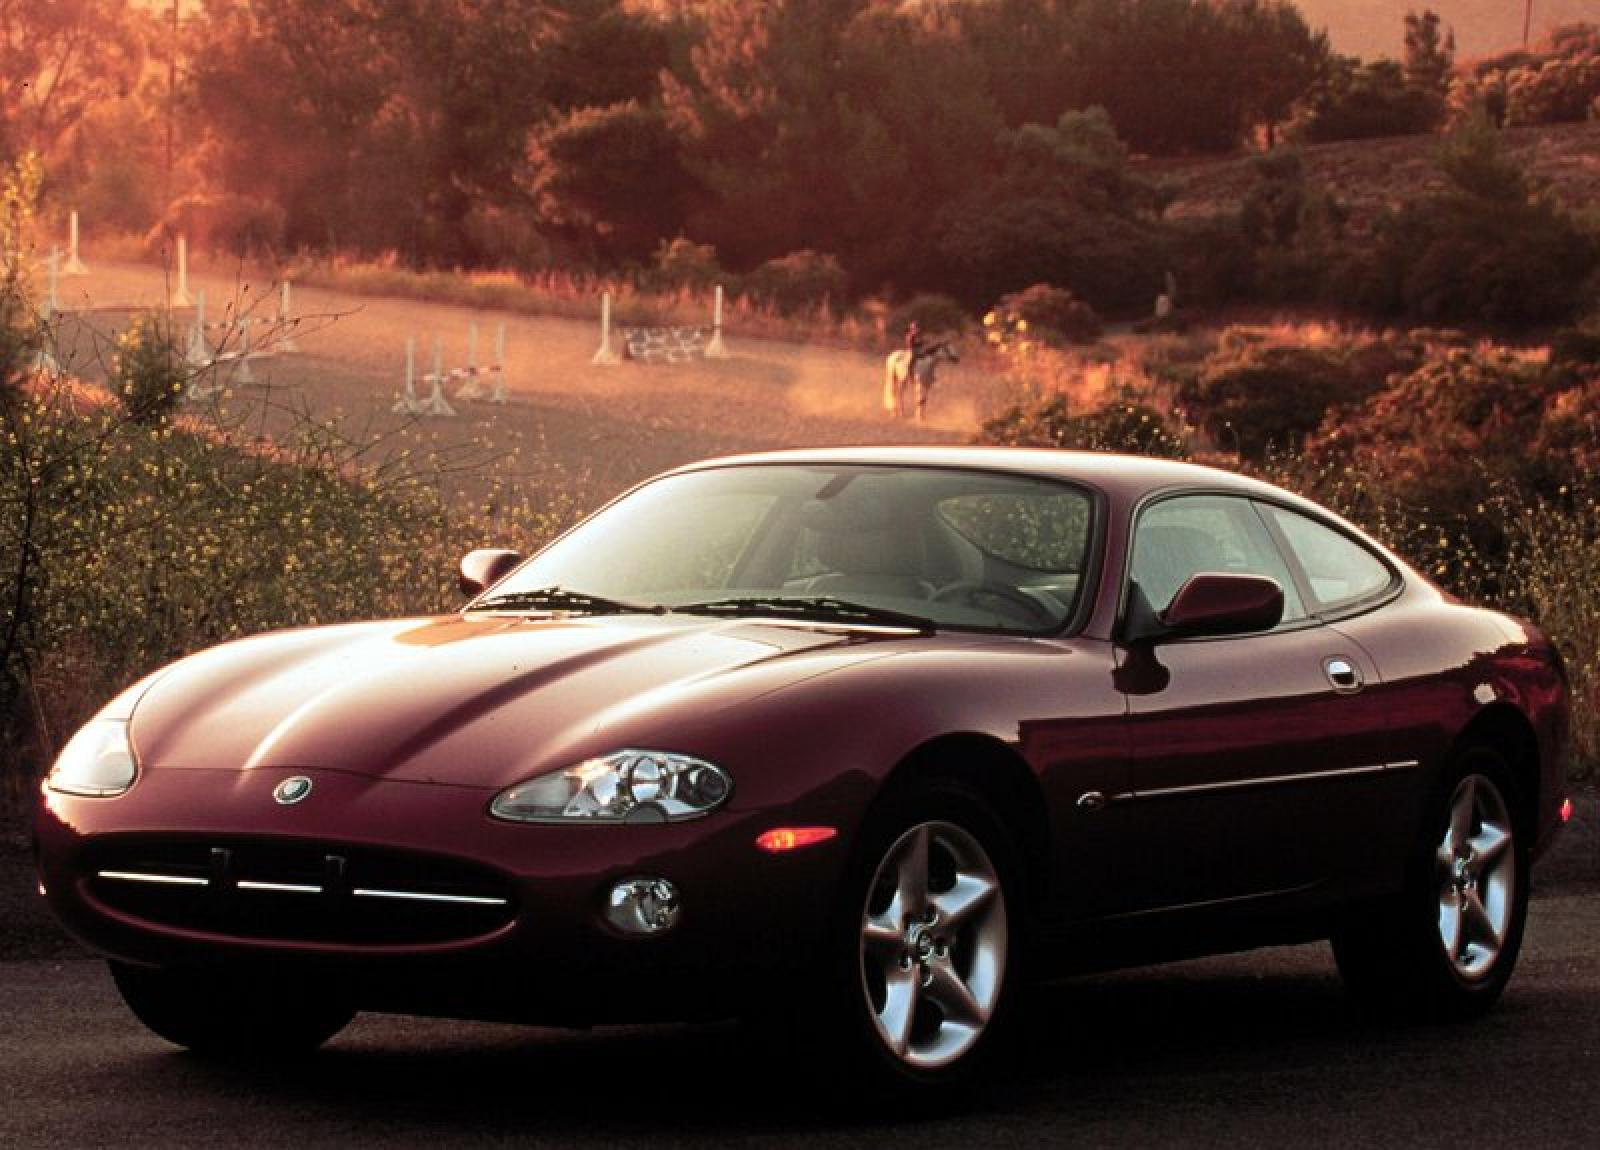 2000 Jaguar Xkr Information And Photos Zombiedrive Xk8 Wiring Diagram 800 1024 1280 1600 Origin